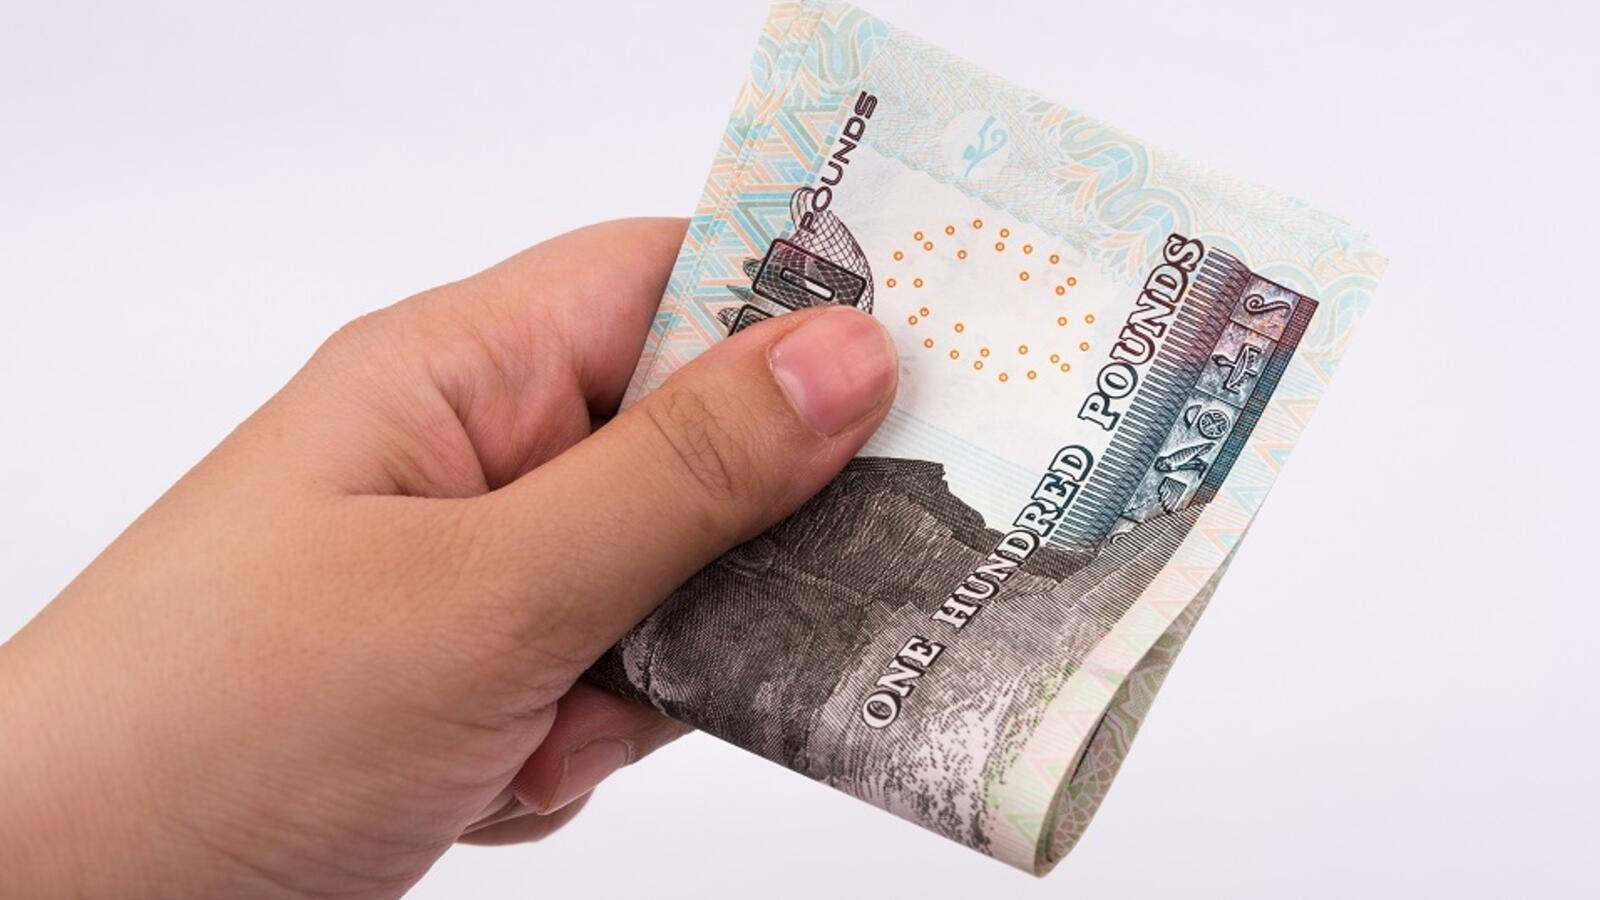 The Egyptian pound strengthened on Sunday to its highest in over two years. (Shutterstock)